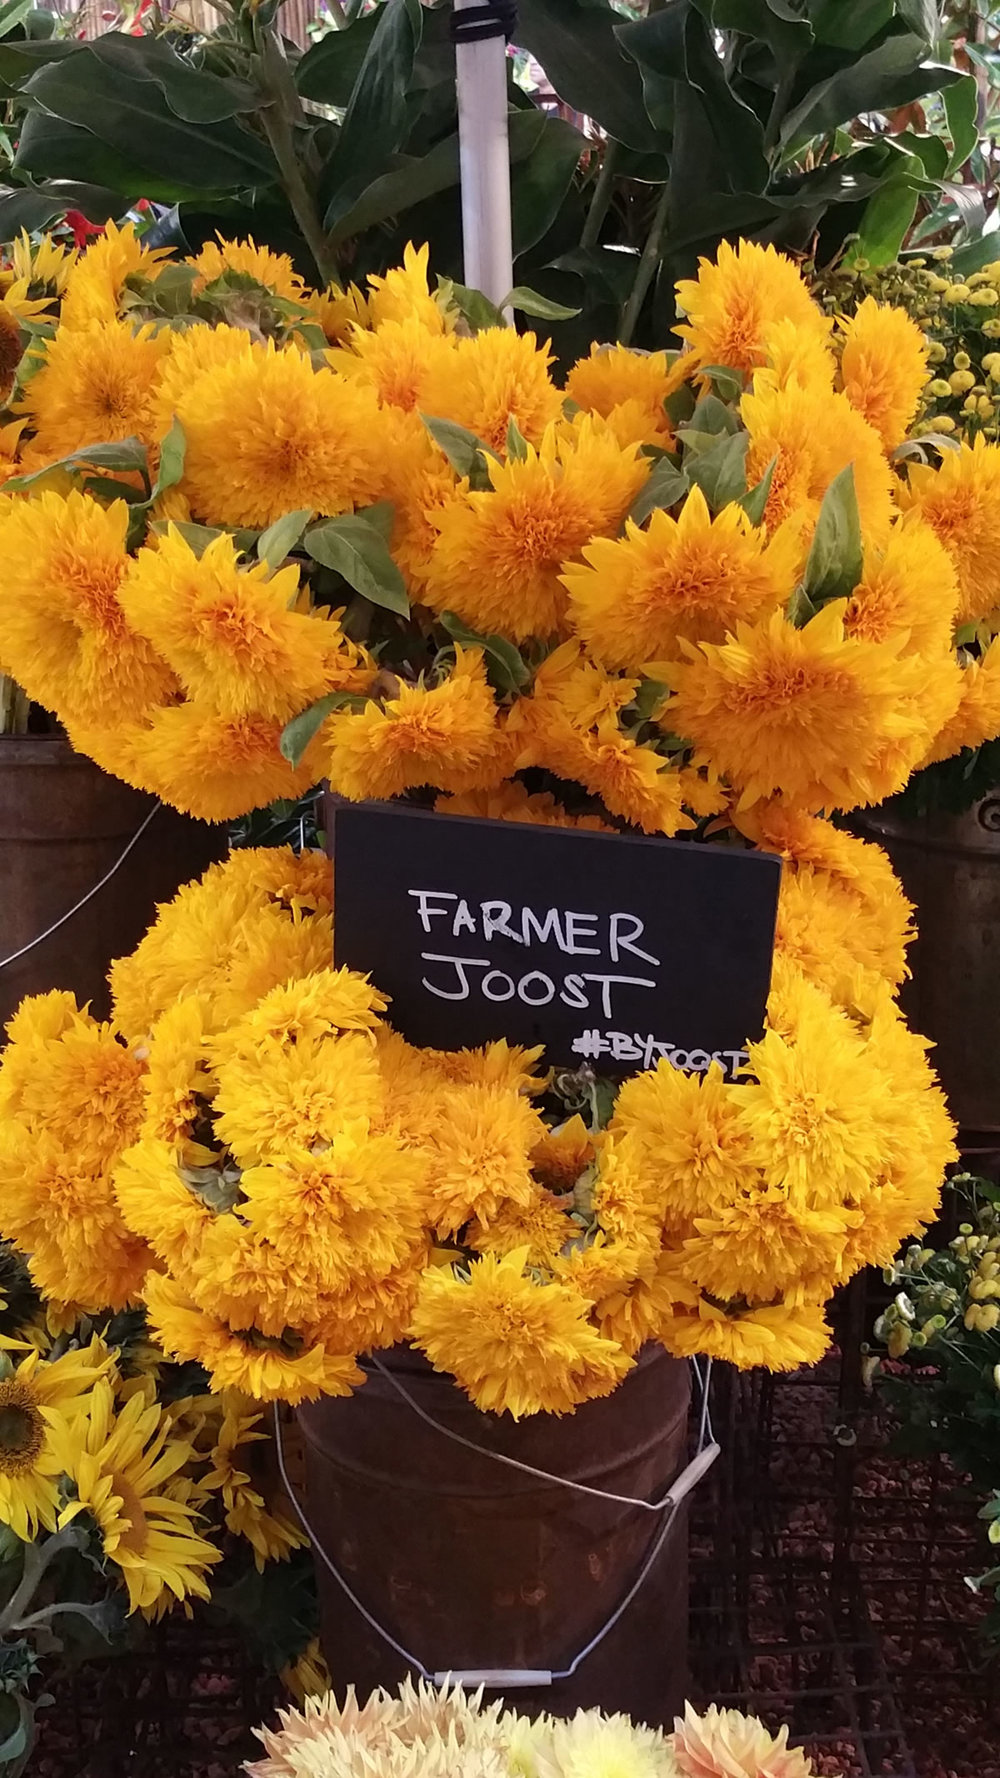 Another of my Local Heroes: Joost...the man's imagination, common sense and optimism for the future is boundless. Growing fabulous flowers is just one of the many parts of this modern day Renaissance Man...If you haven't heard of him, do look him up!